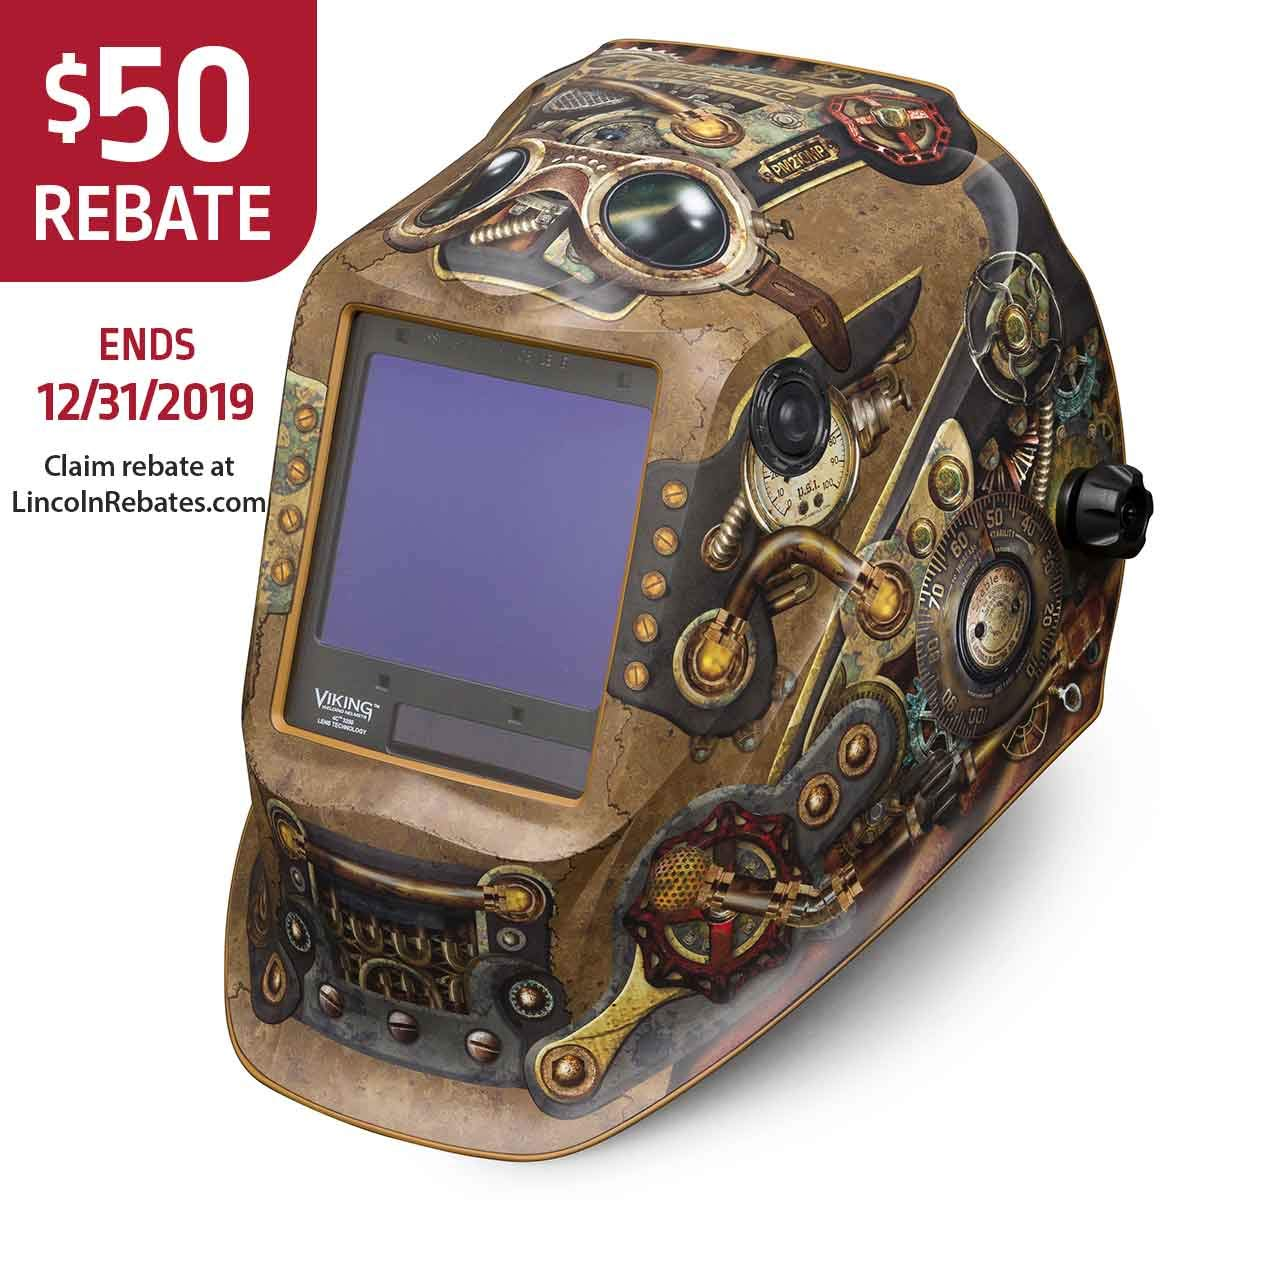 Lincoln Electric K3428-4 VIKING 3350 Welding Helmet, Steampunk by Lincoln Electric